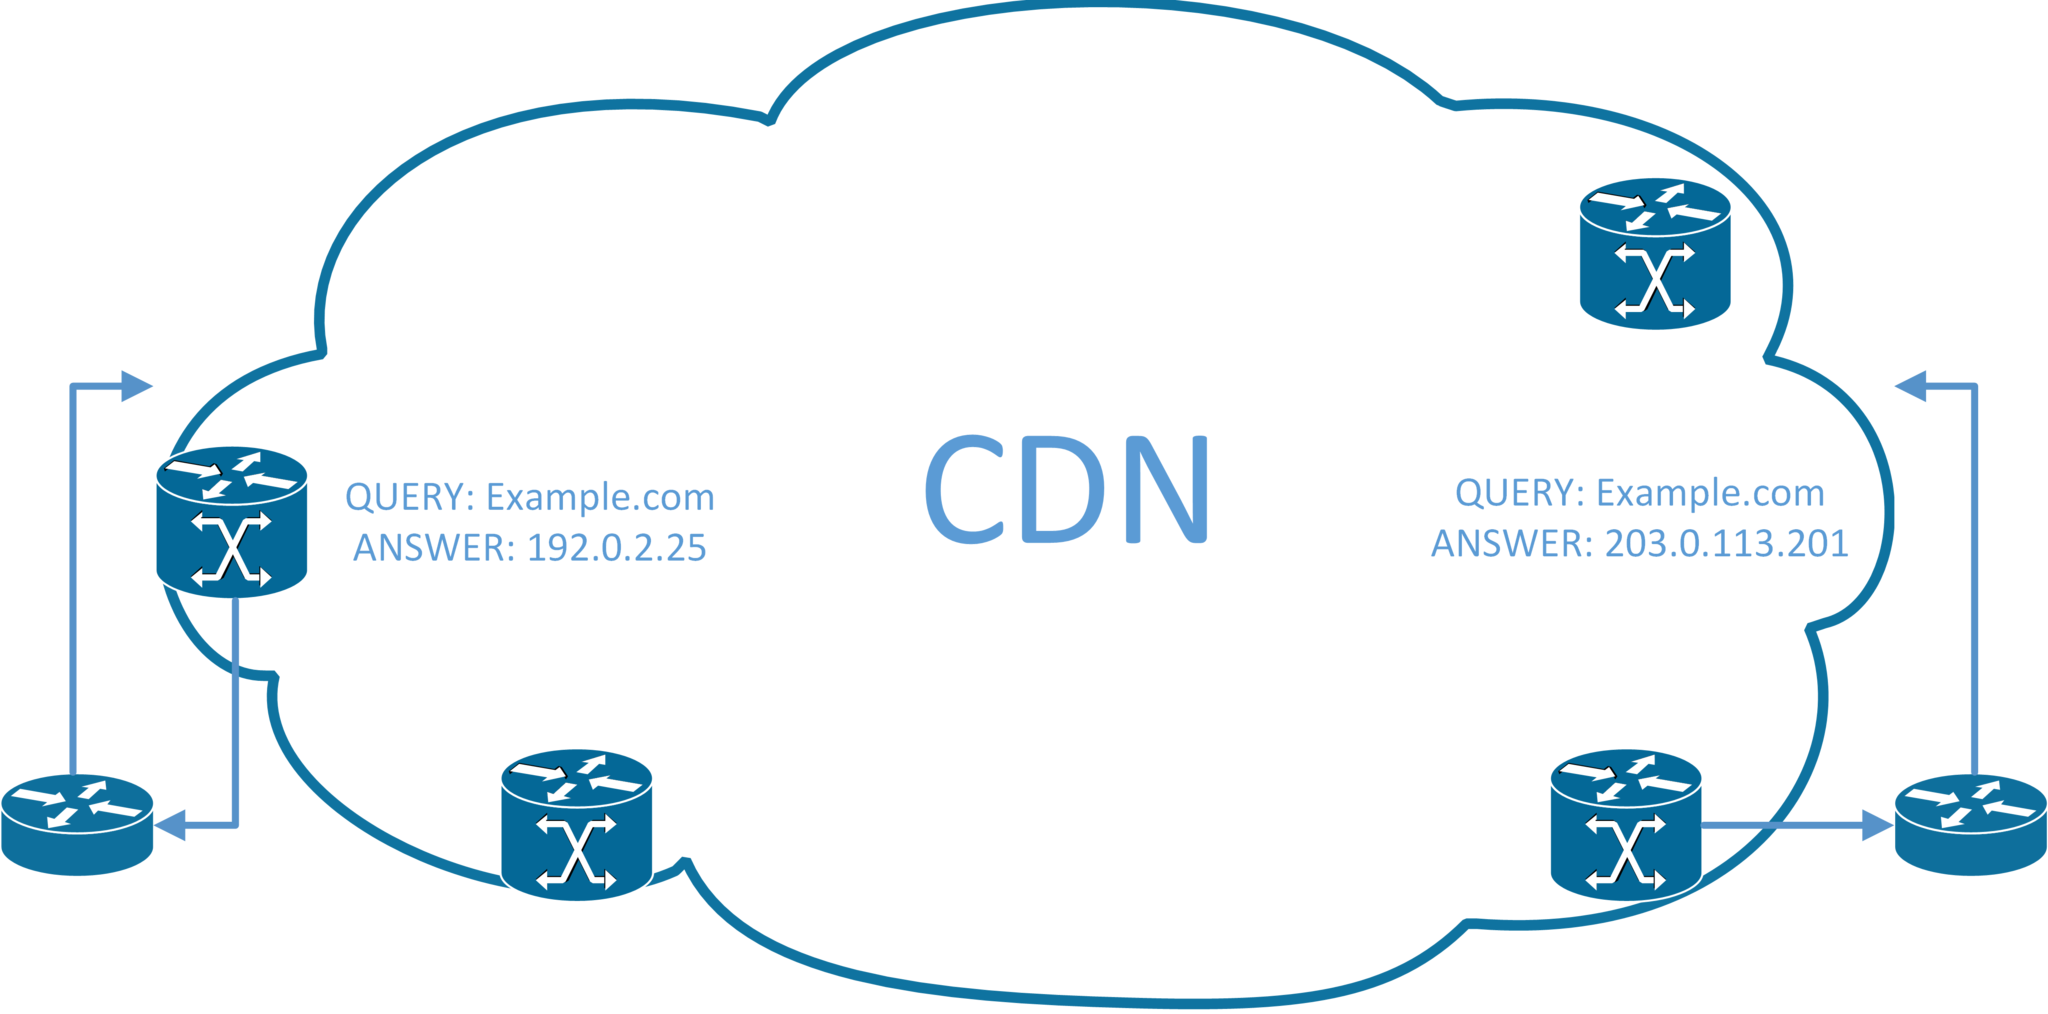 CDN Illustration, Servers at either side and DNS queries leading toward them